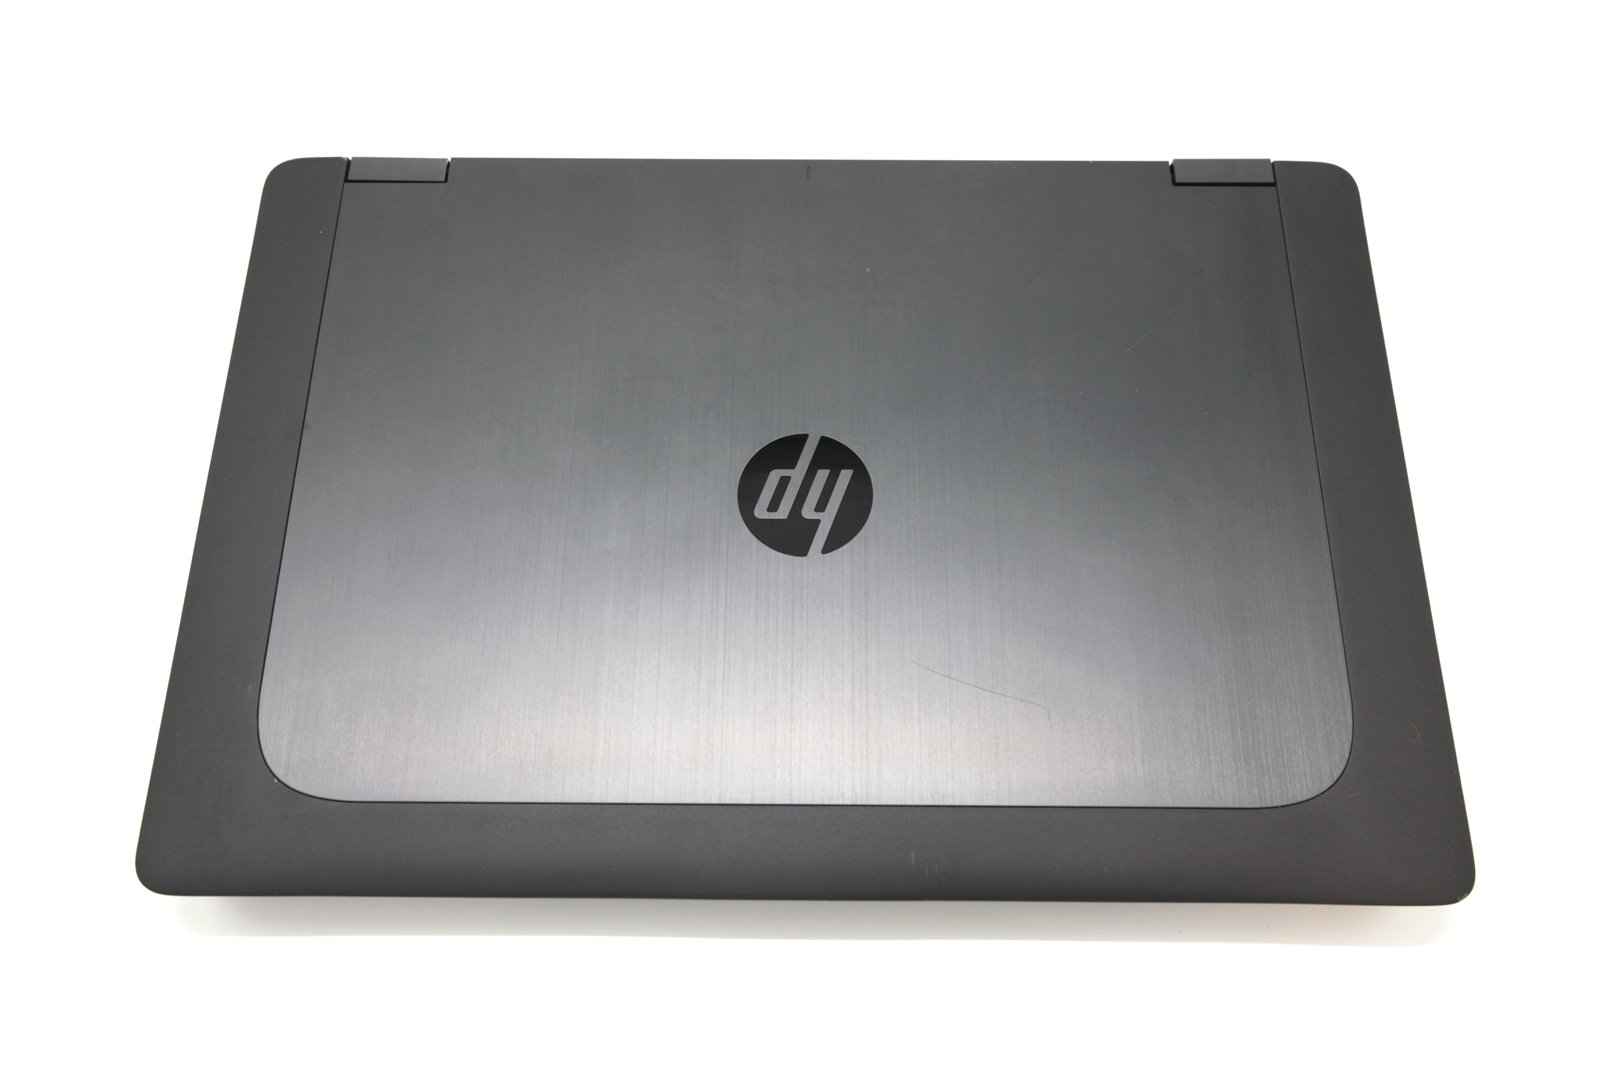 HP ZBook 15 CAD Laptop: 24GB RAM, 4th Gen Core i7, 240GB SSD, Warranty, VAT - CruiseTech